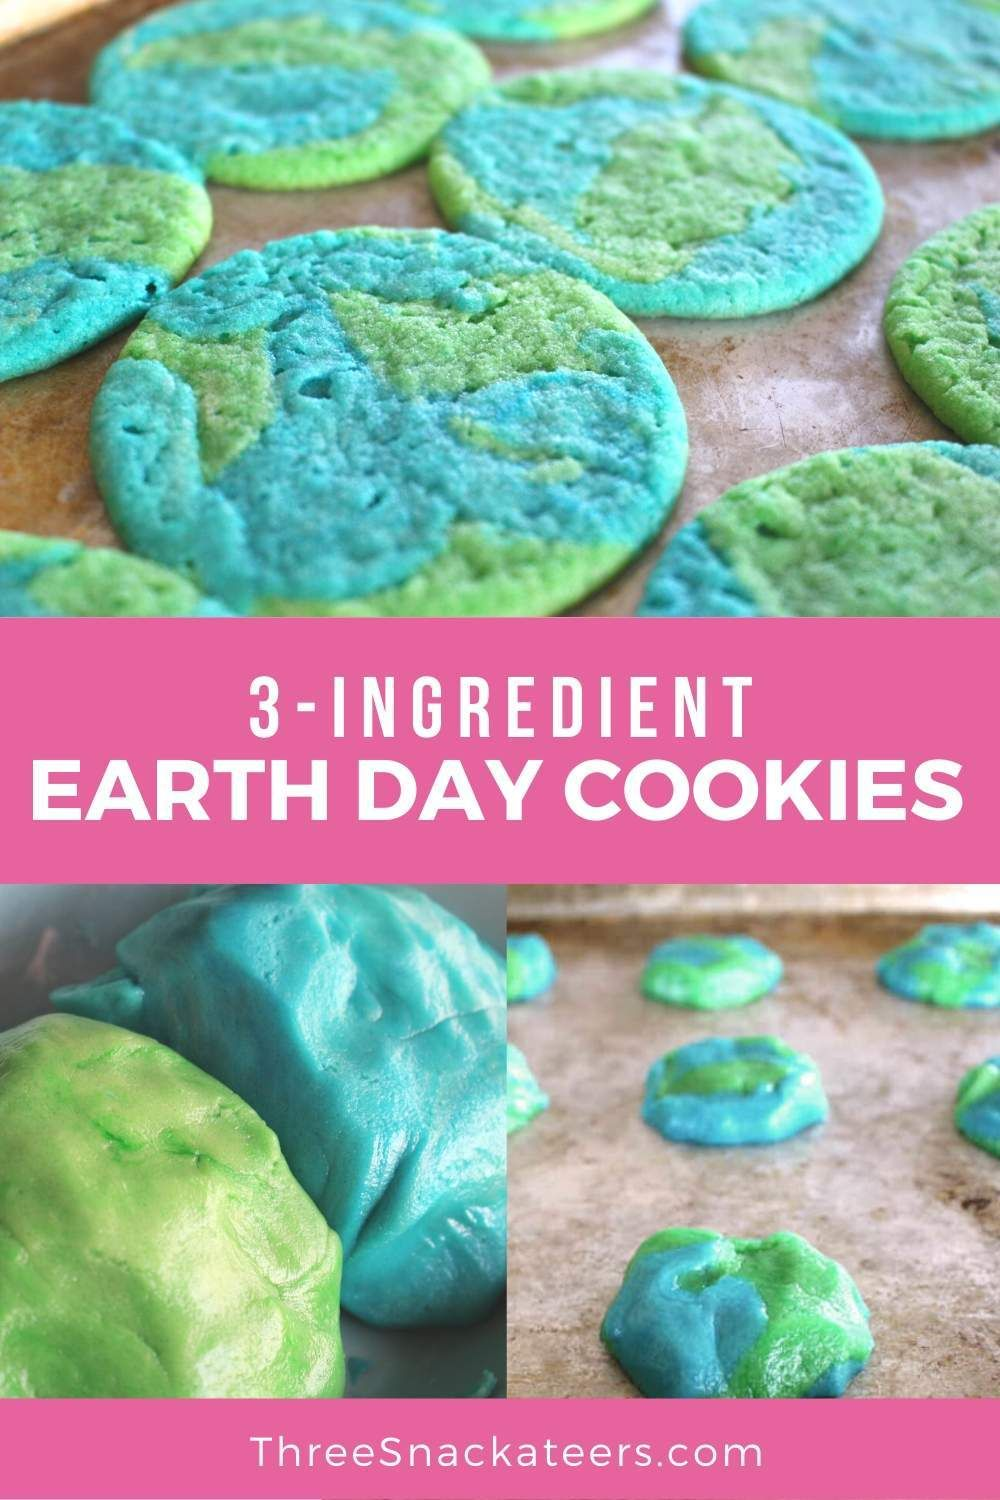 3 Ingredient Earth Day Sugar Cookies Recipe Step By Step With Photos Recipe In 2020 Homemade Sugar Cookies Recipe Homemade Sugar Cookies Cookie Recipes Decorating